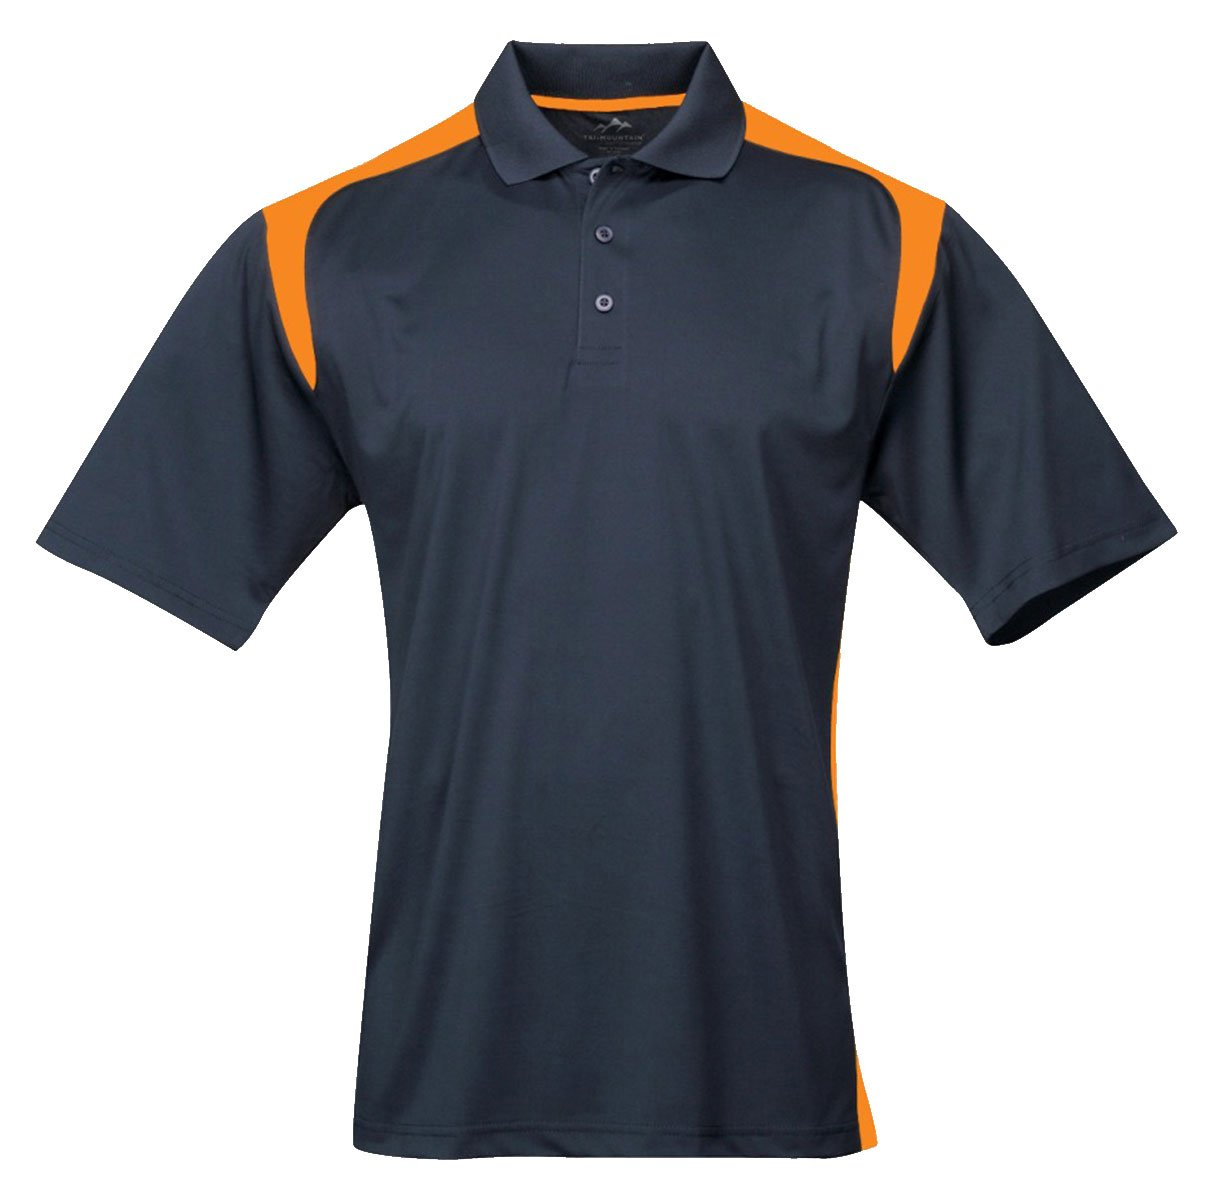 Tri-mountain Mens 100% Polyester UC Knit Polo Shirt. 145TM - NAVY / GOLD_XL